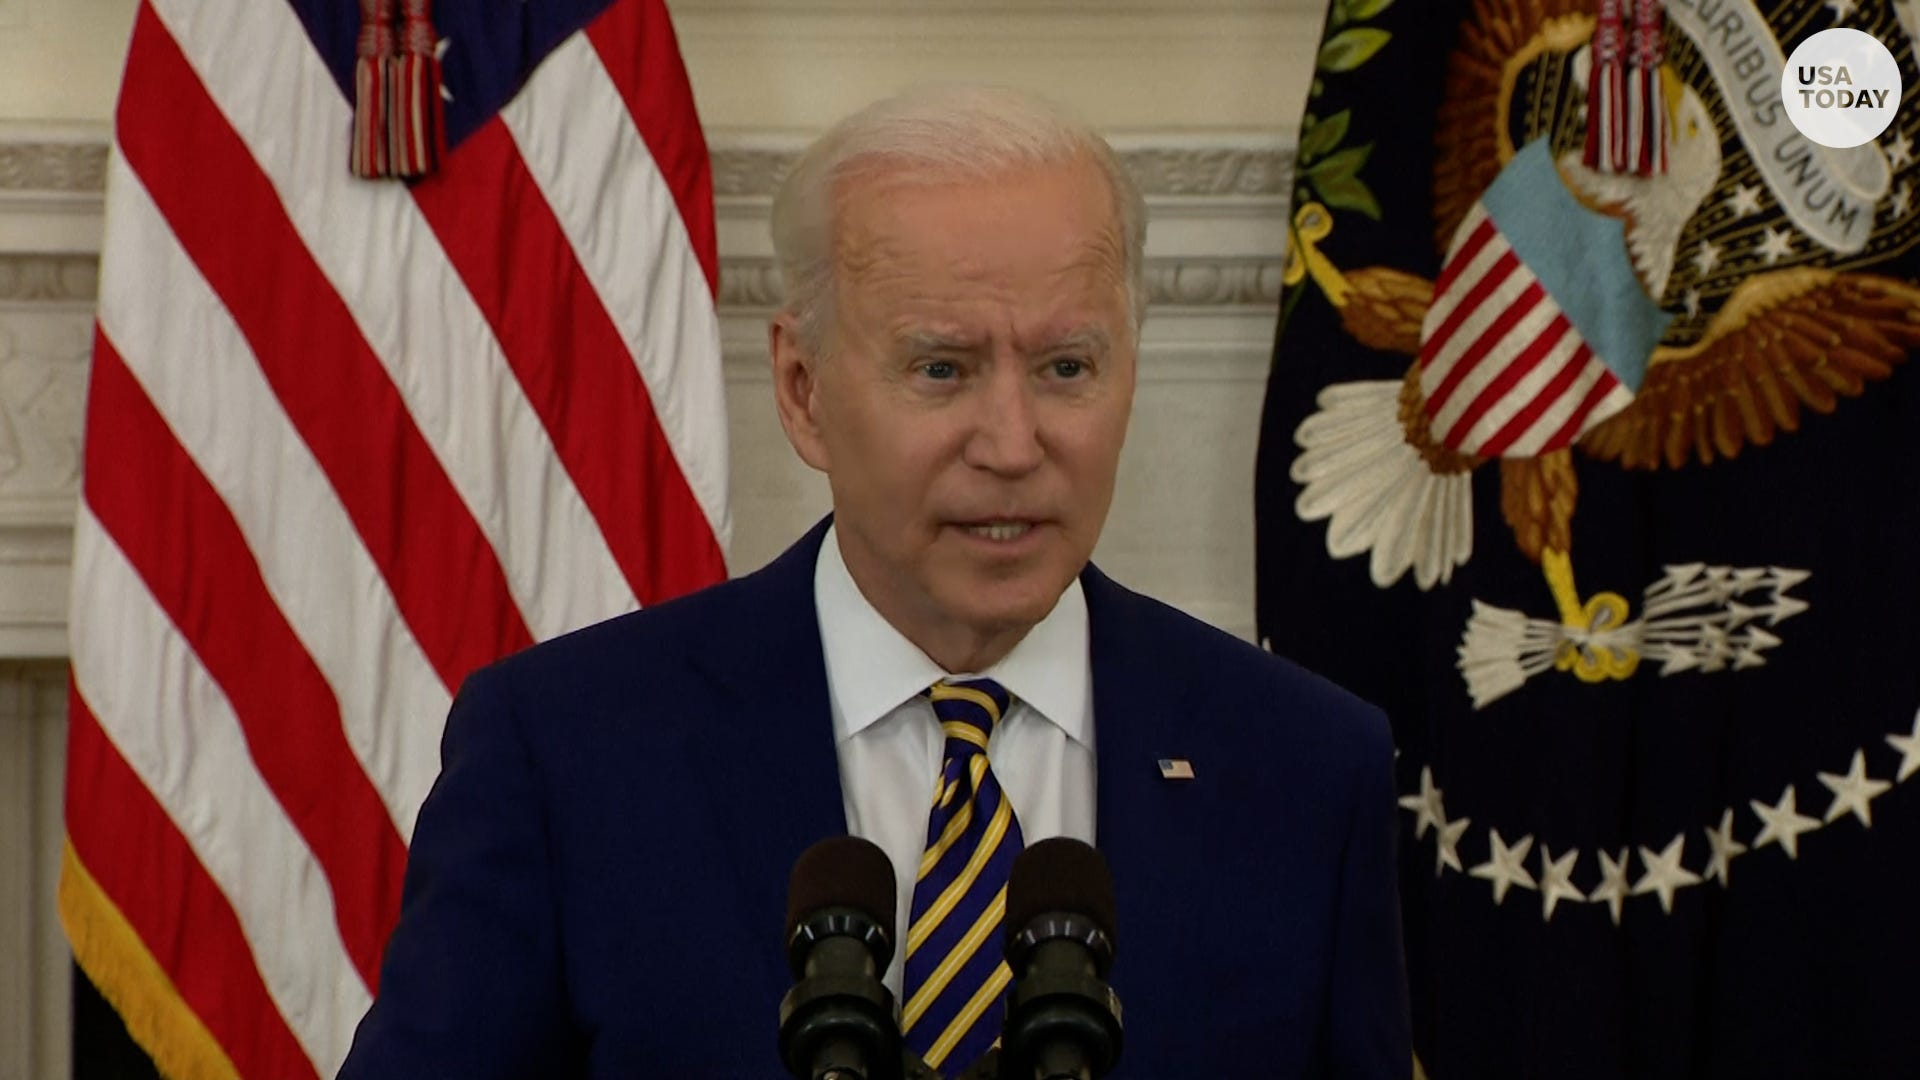 Biden comments on COVID-19 Delta variant and possible rebuke by Catholic Bishops